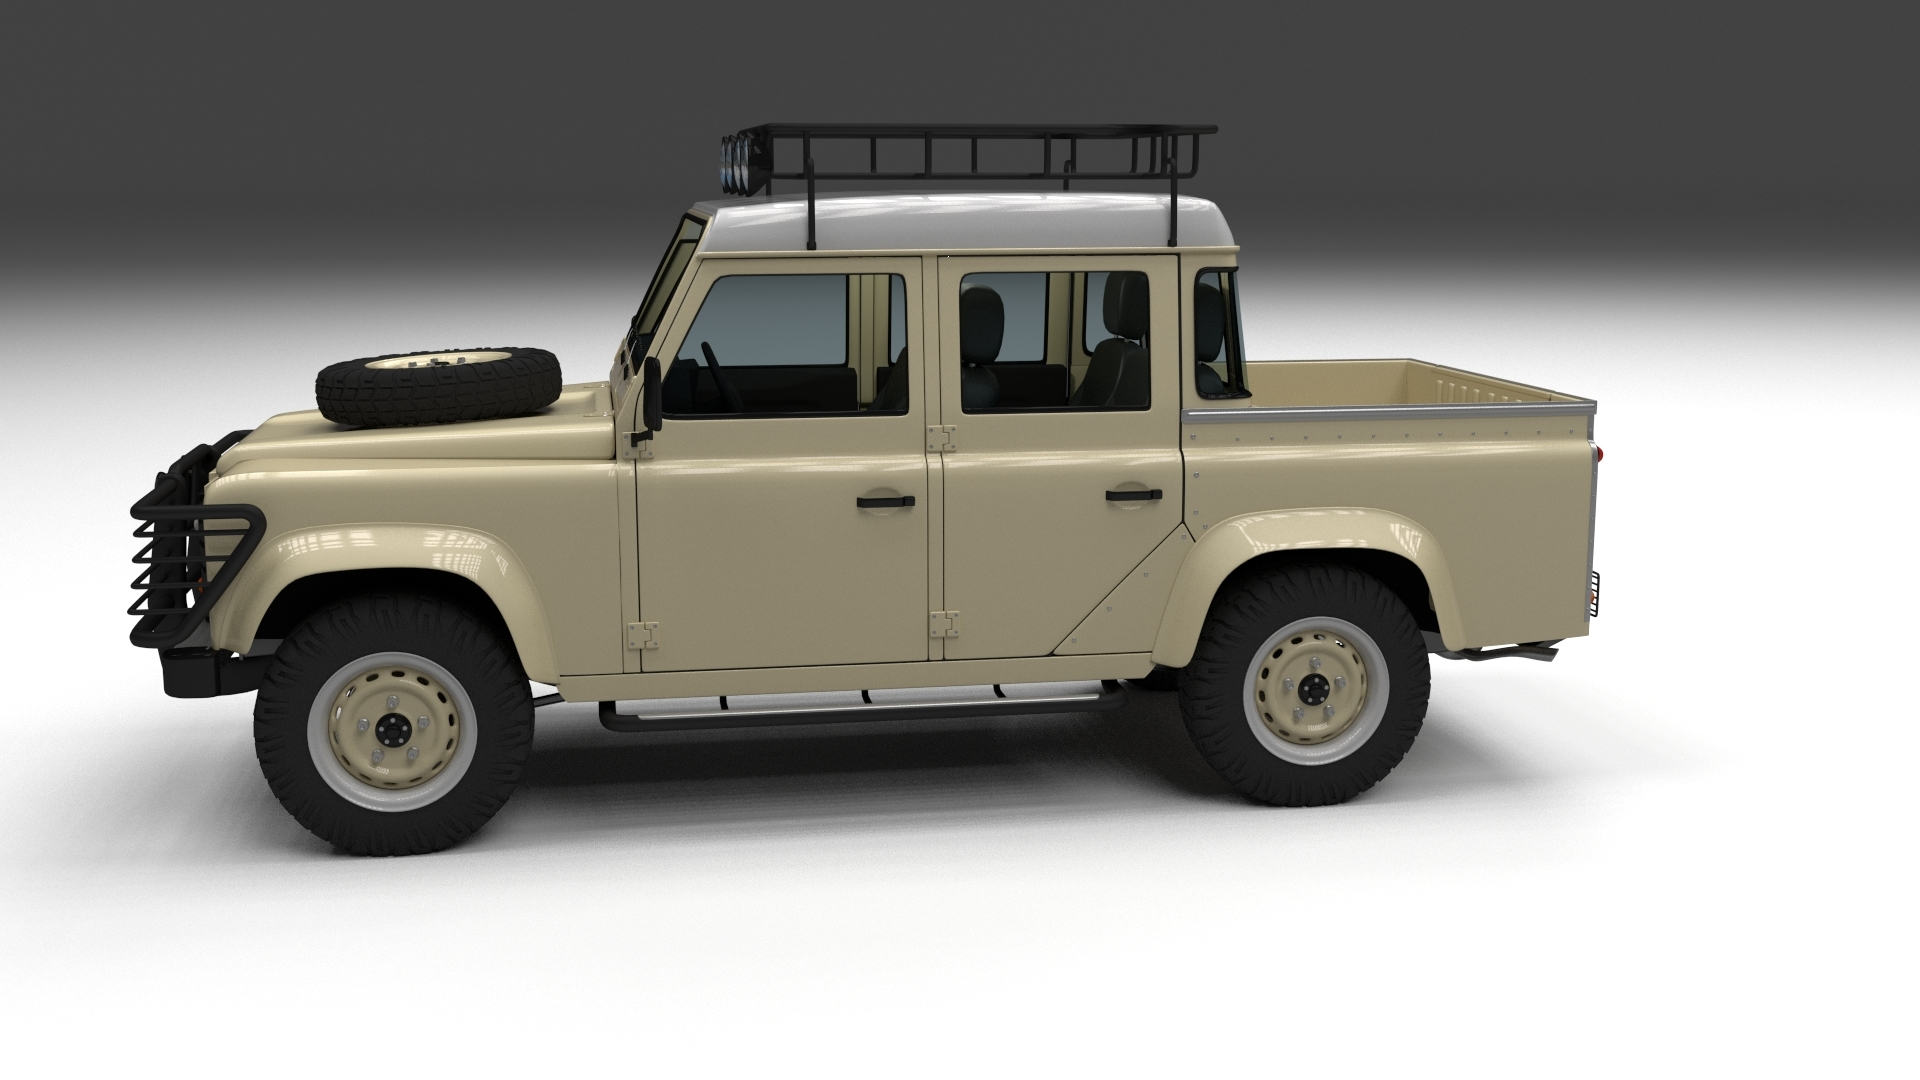 land rover defender 110 double cab pick up w inter by dragosburian. Black Bedroom Furniture Sets. Home Design Ideas